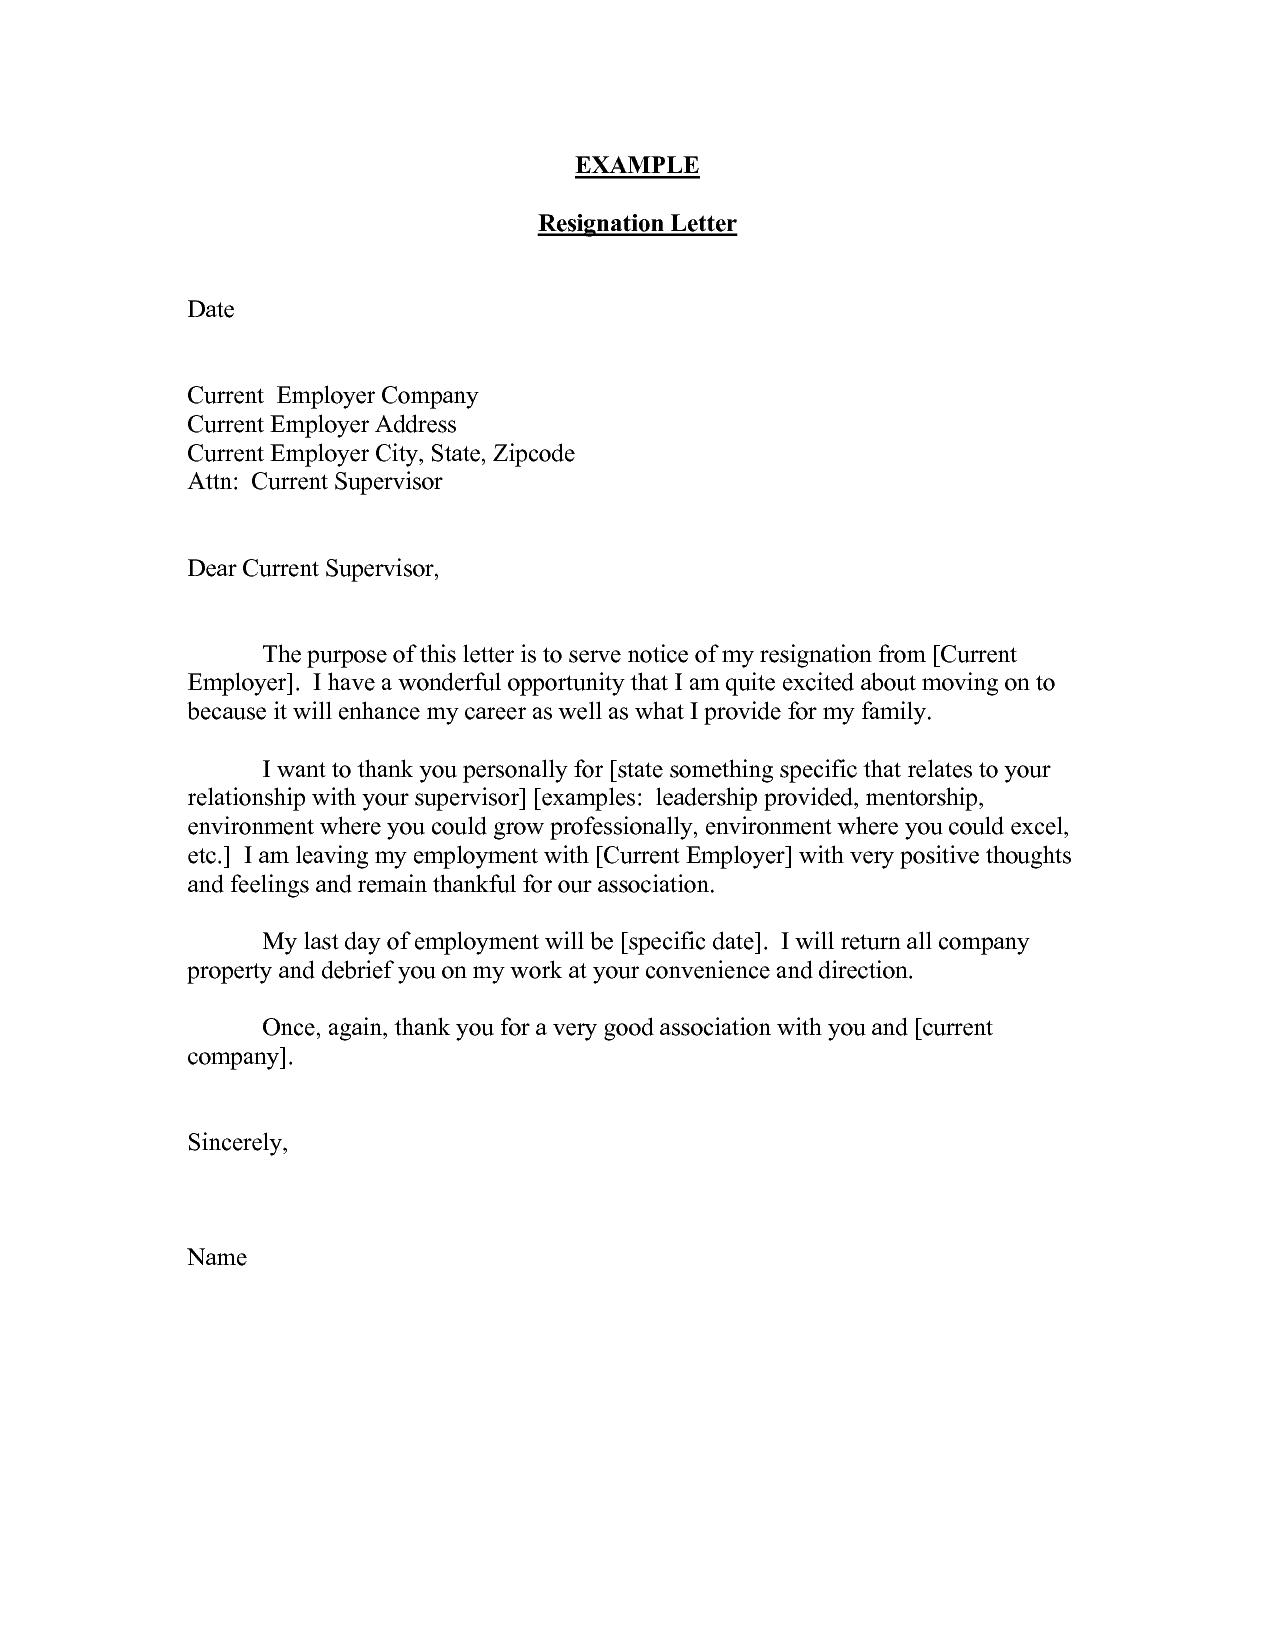 Resegnation Letter Resignation Letter Sample Doc Resume And Letter